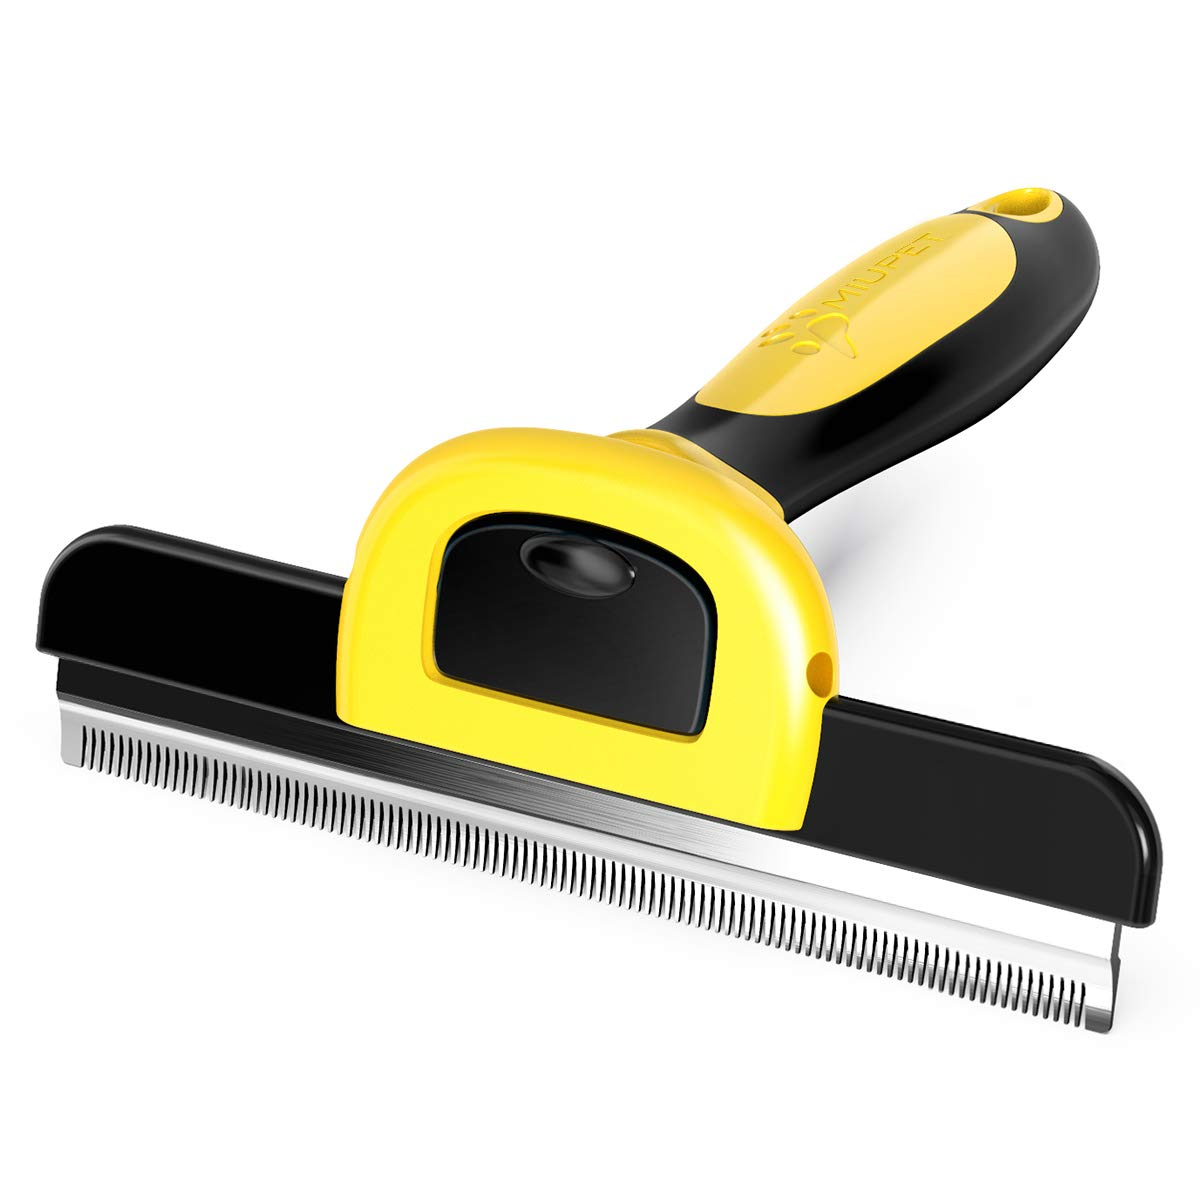 MIU Color Pet Deshedding Brush, Effectively Grooming Tool by Shedding Up to 95%, 5-Inch Length Comb for Short Hair and Long Hair Dogs Cats